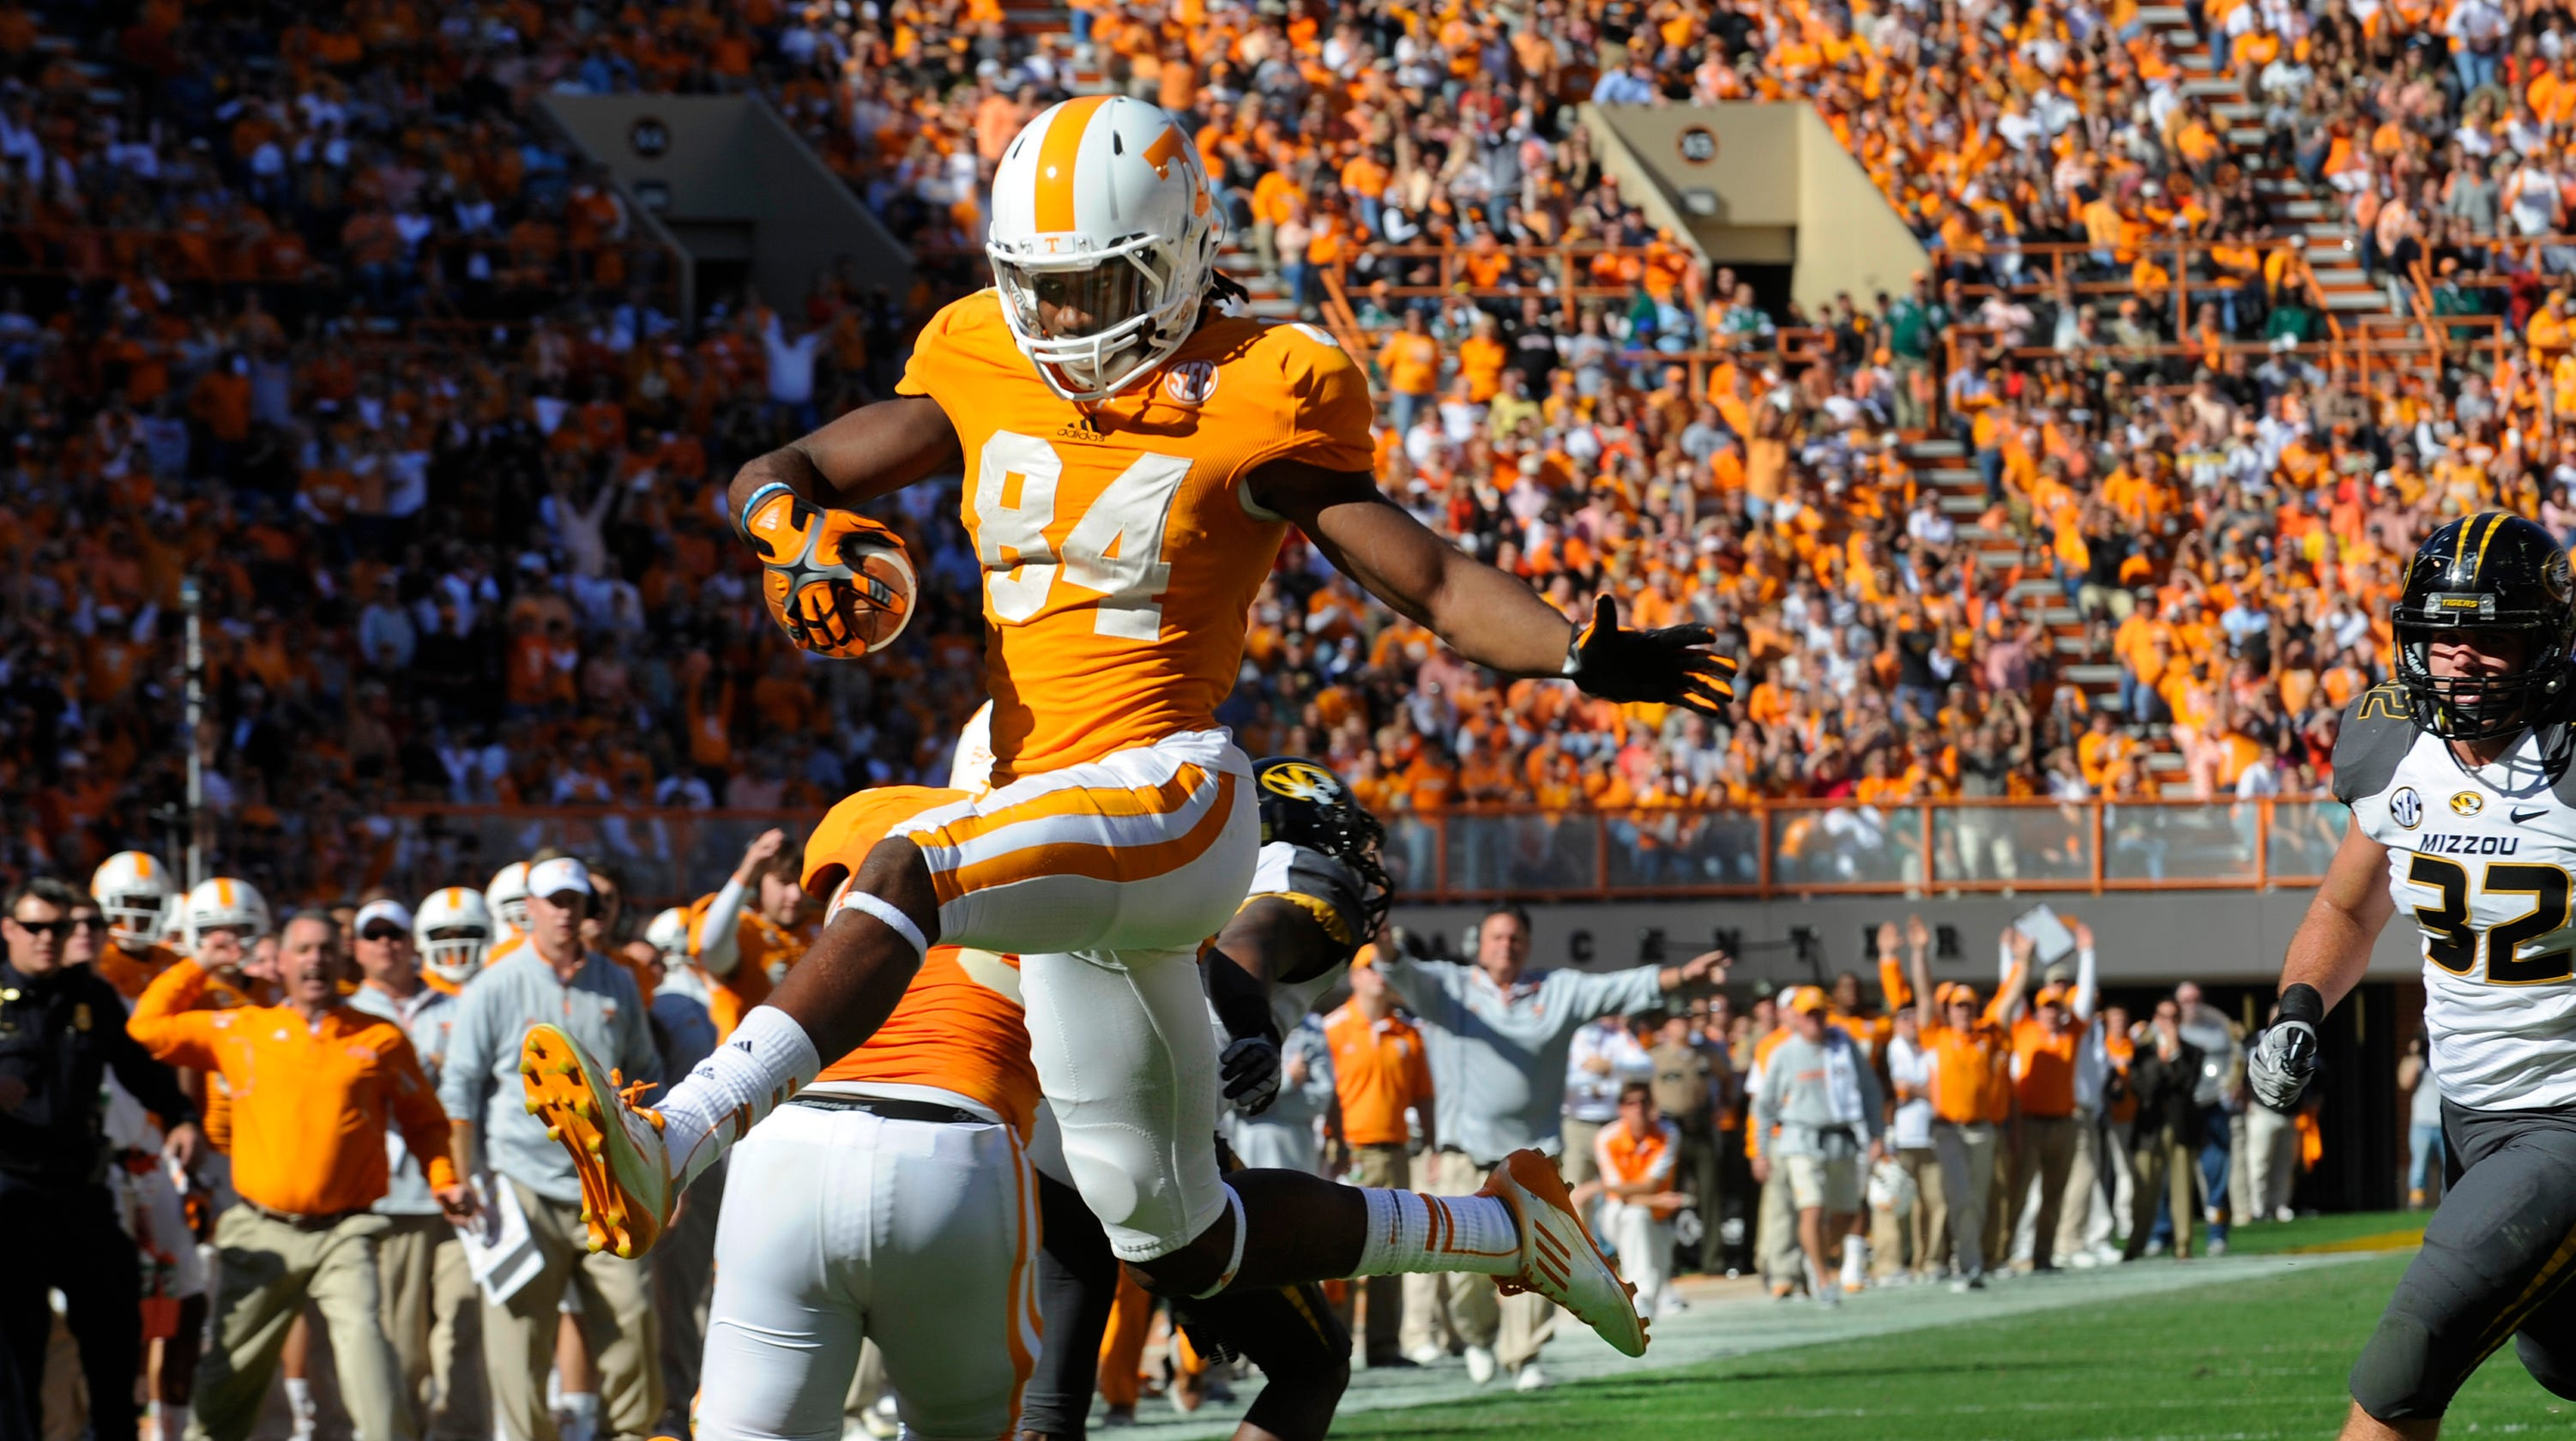 online retailer 4b7a8 f4fb5 Cordarrelle Patterson says one season with UT Vols 'was a ...